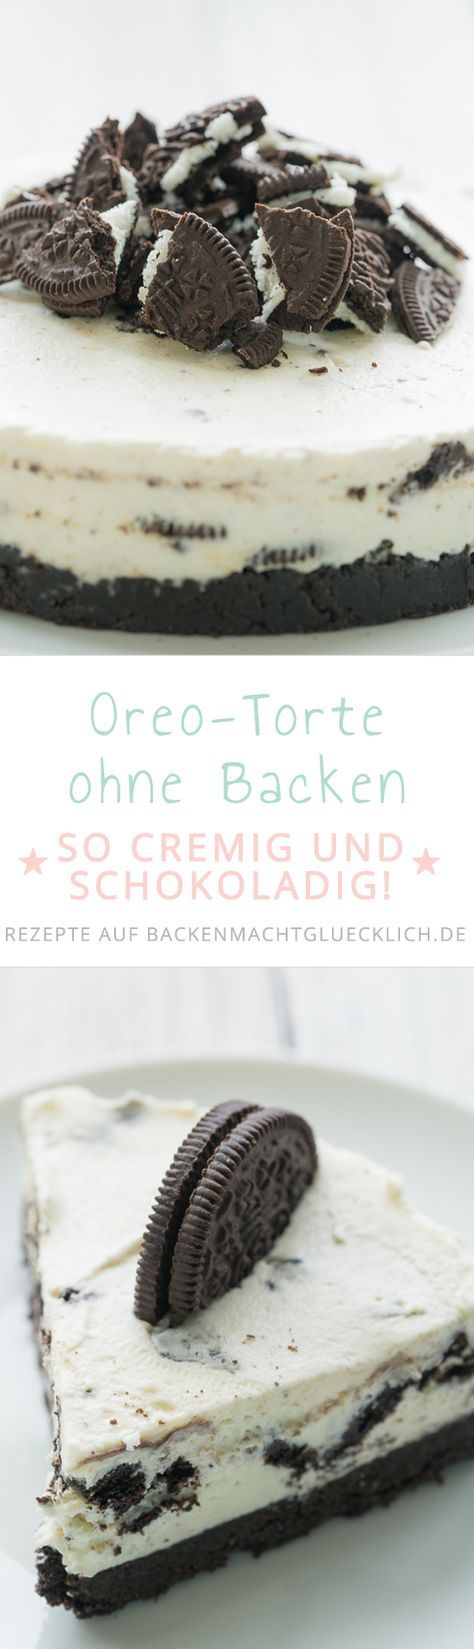 oreo torte ohne backen rezept kuchen pinterest backen kuchen und oreo torte ohne backen. Black Bedroom Furniture Sets. Home Design Ideas